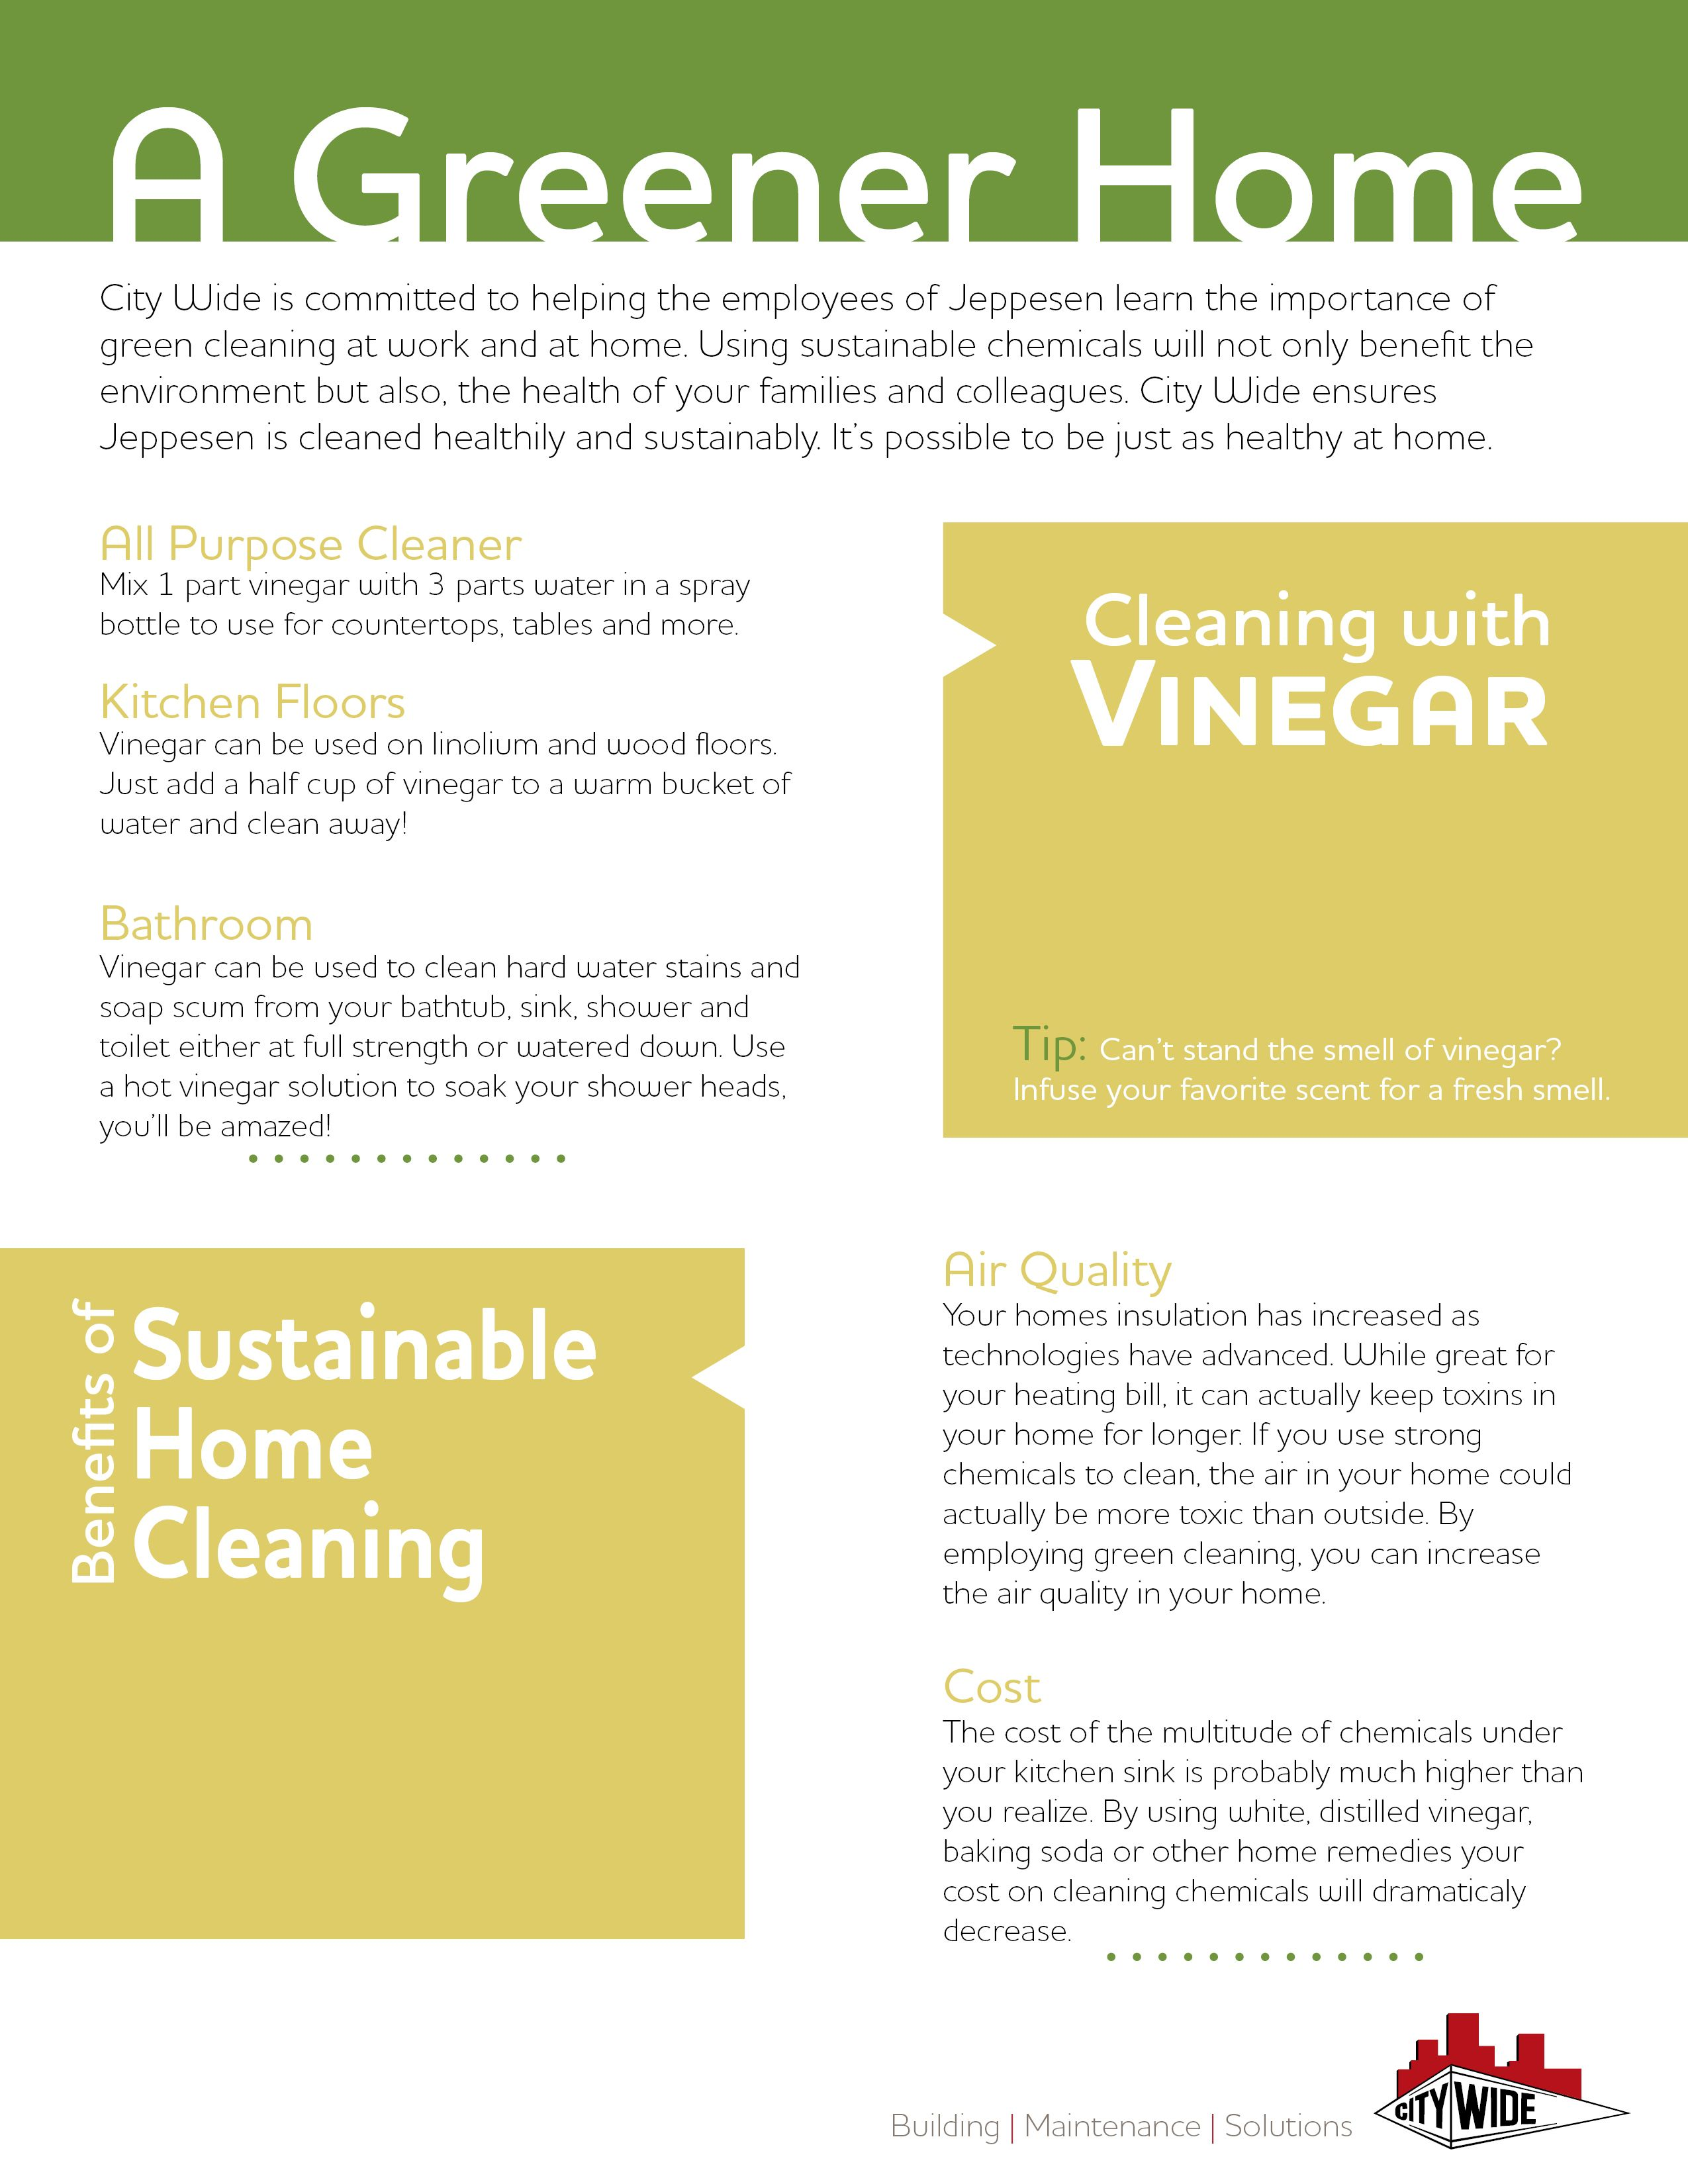 Home cleaning tips - Google Search | Green Living | Pinterest on home gardening tips, home coffee tips, home construction tips, home inspection tips, landscaping tips, home packing tips, home repair tips, home organizing tips, home fitness tips, home care tips, home energy tips, home heating tips, home security tips, real estate tips, home finishing tips, home handyman tips, home management tips, home cooling tips, home recycling tips, home insurance tips,